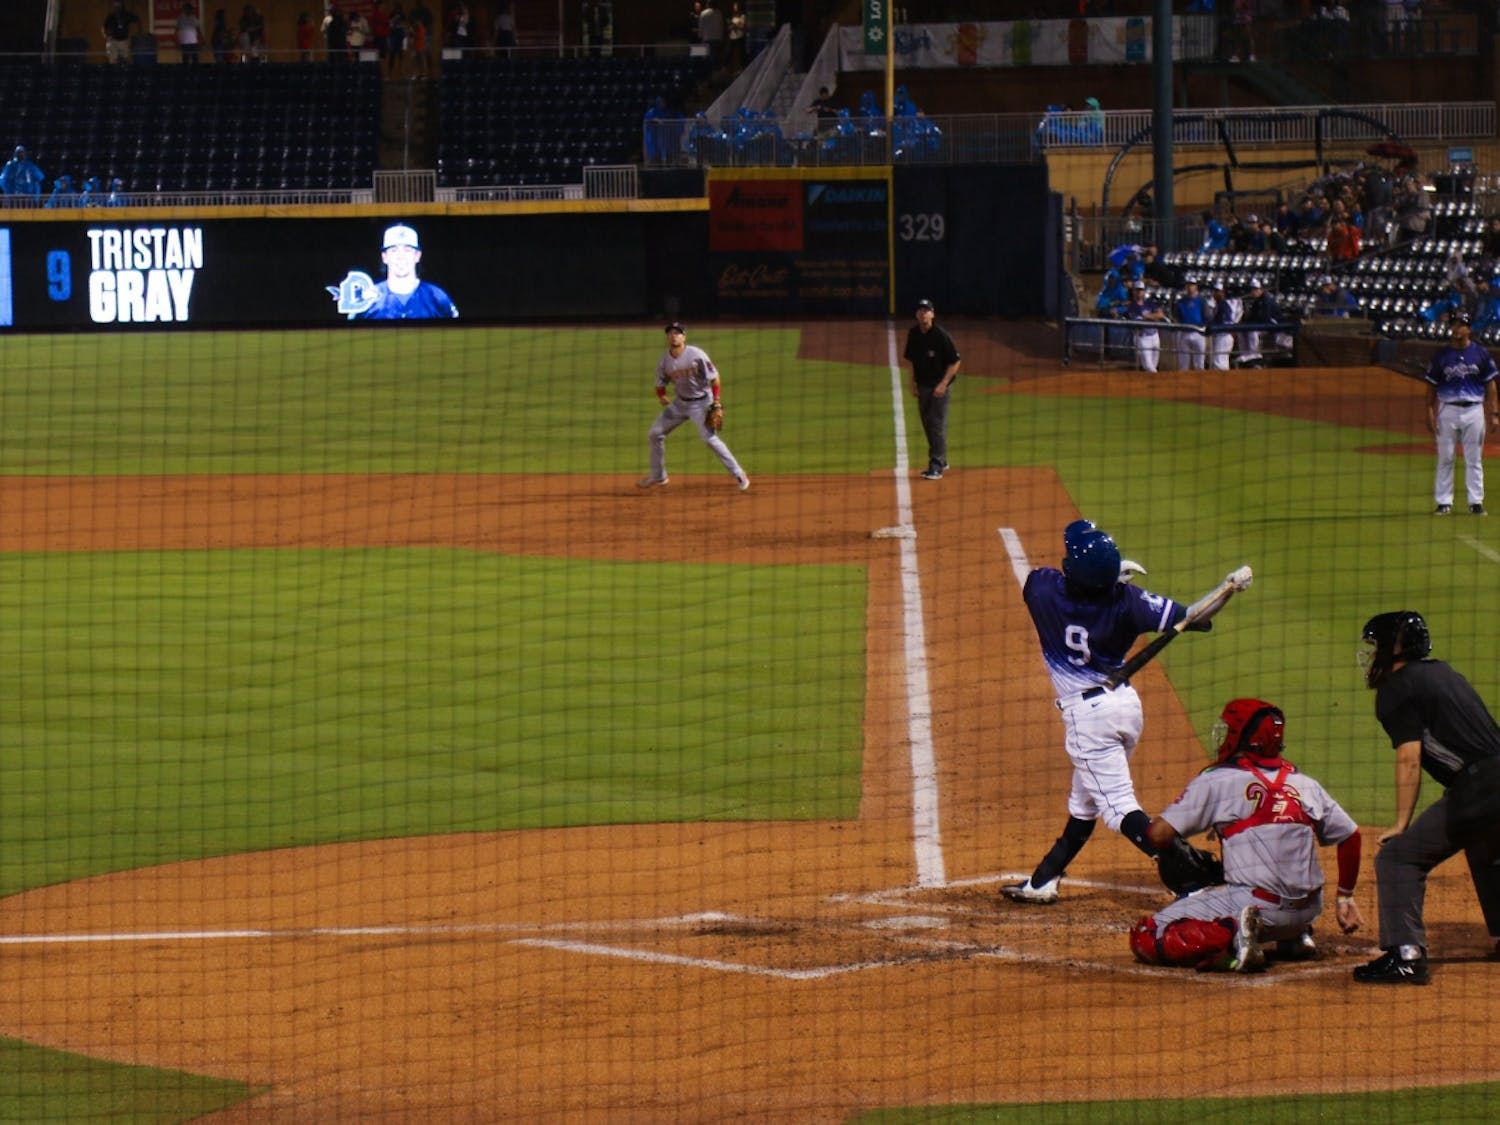 Tristan Gray admired his swing as the Durham Bulls took on the Memphis Redbirds at home Aug. 6.